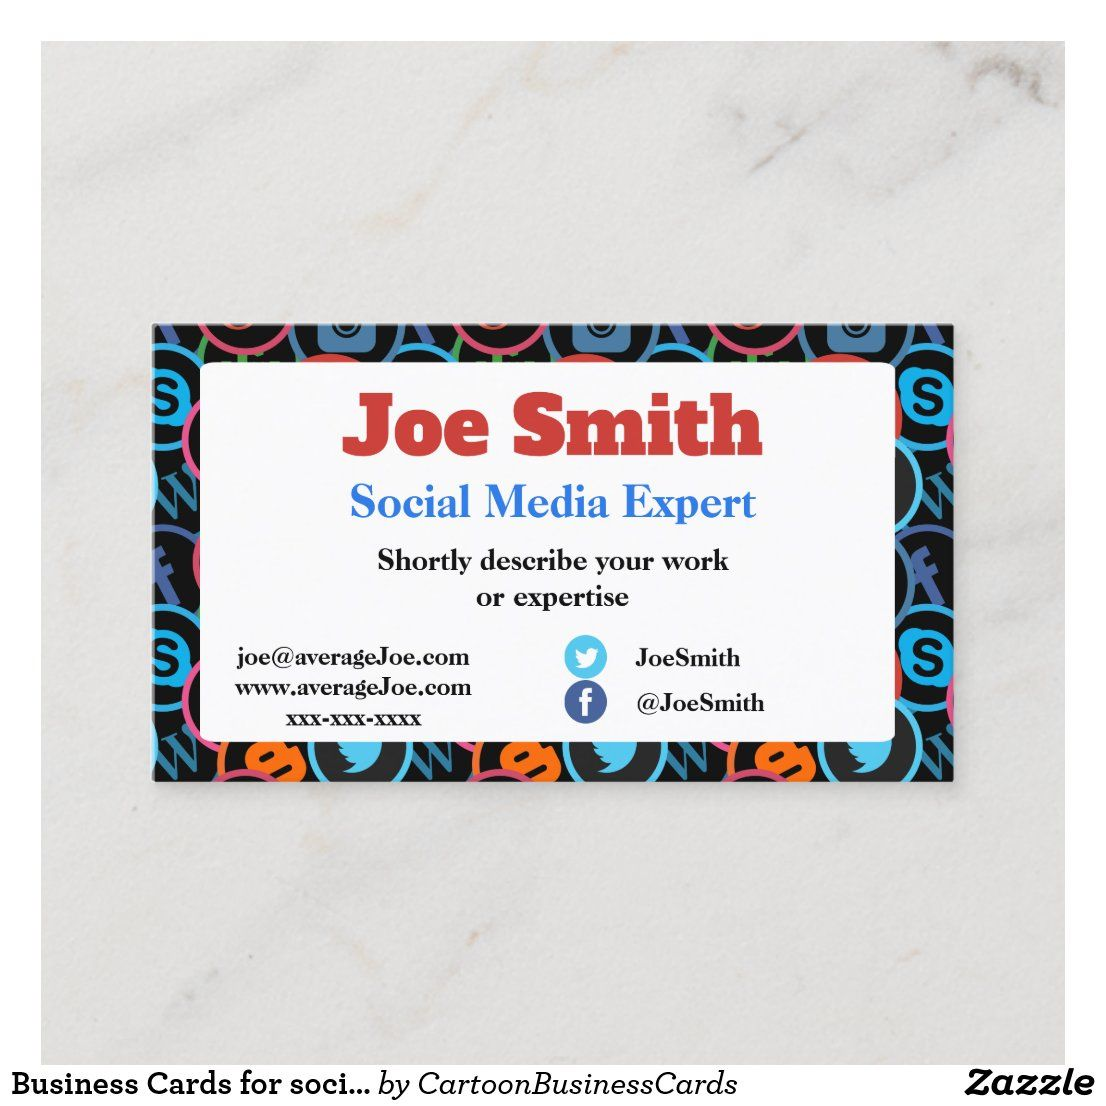 Business Cards For Social Media Expert Zazzle Com Social Media Expert Zazzle Business Cards Business Cards